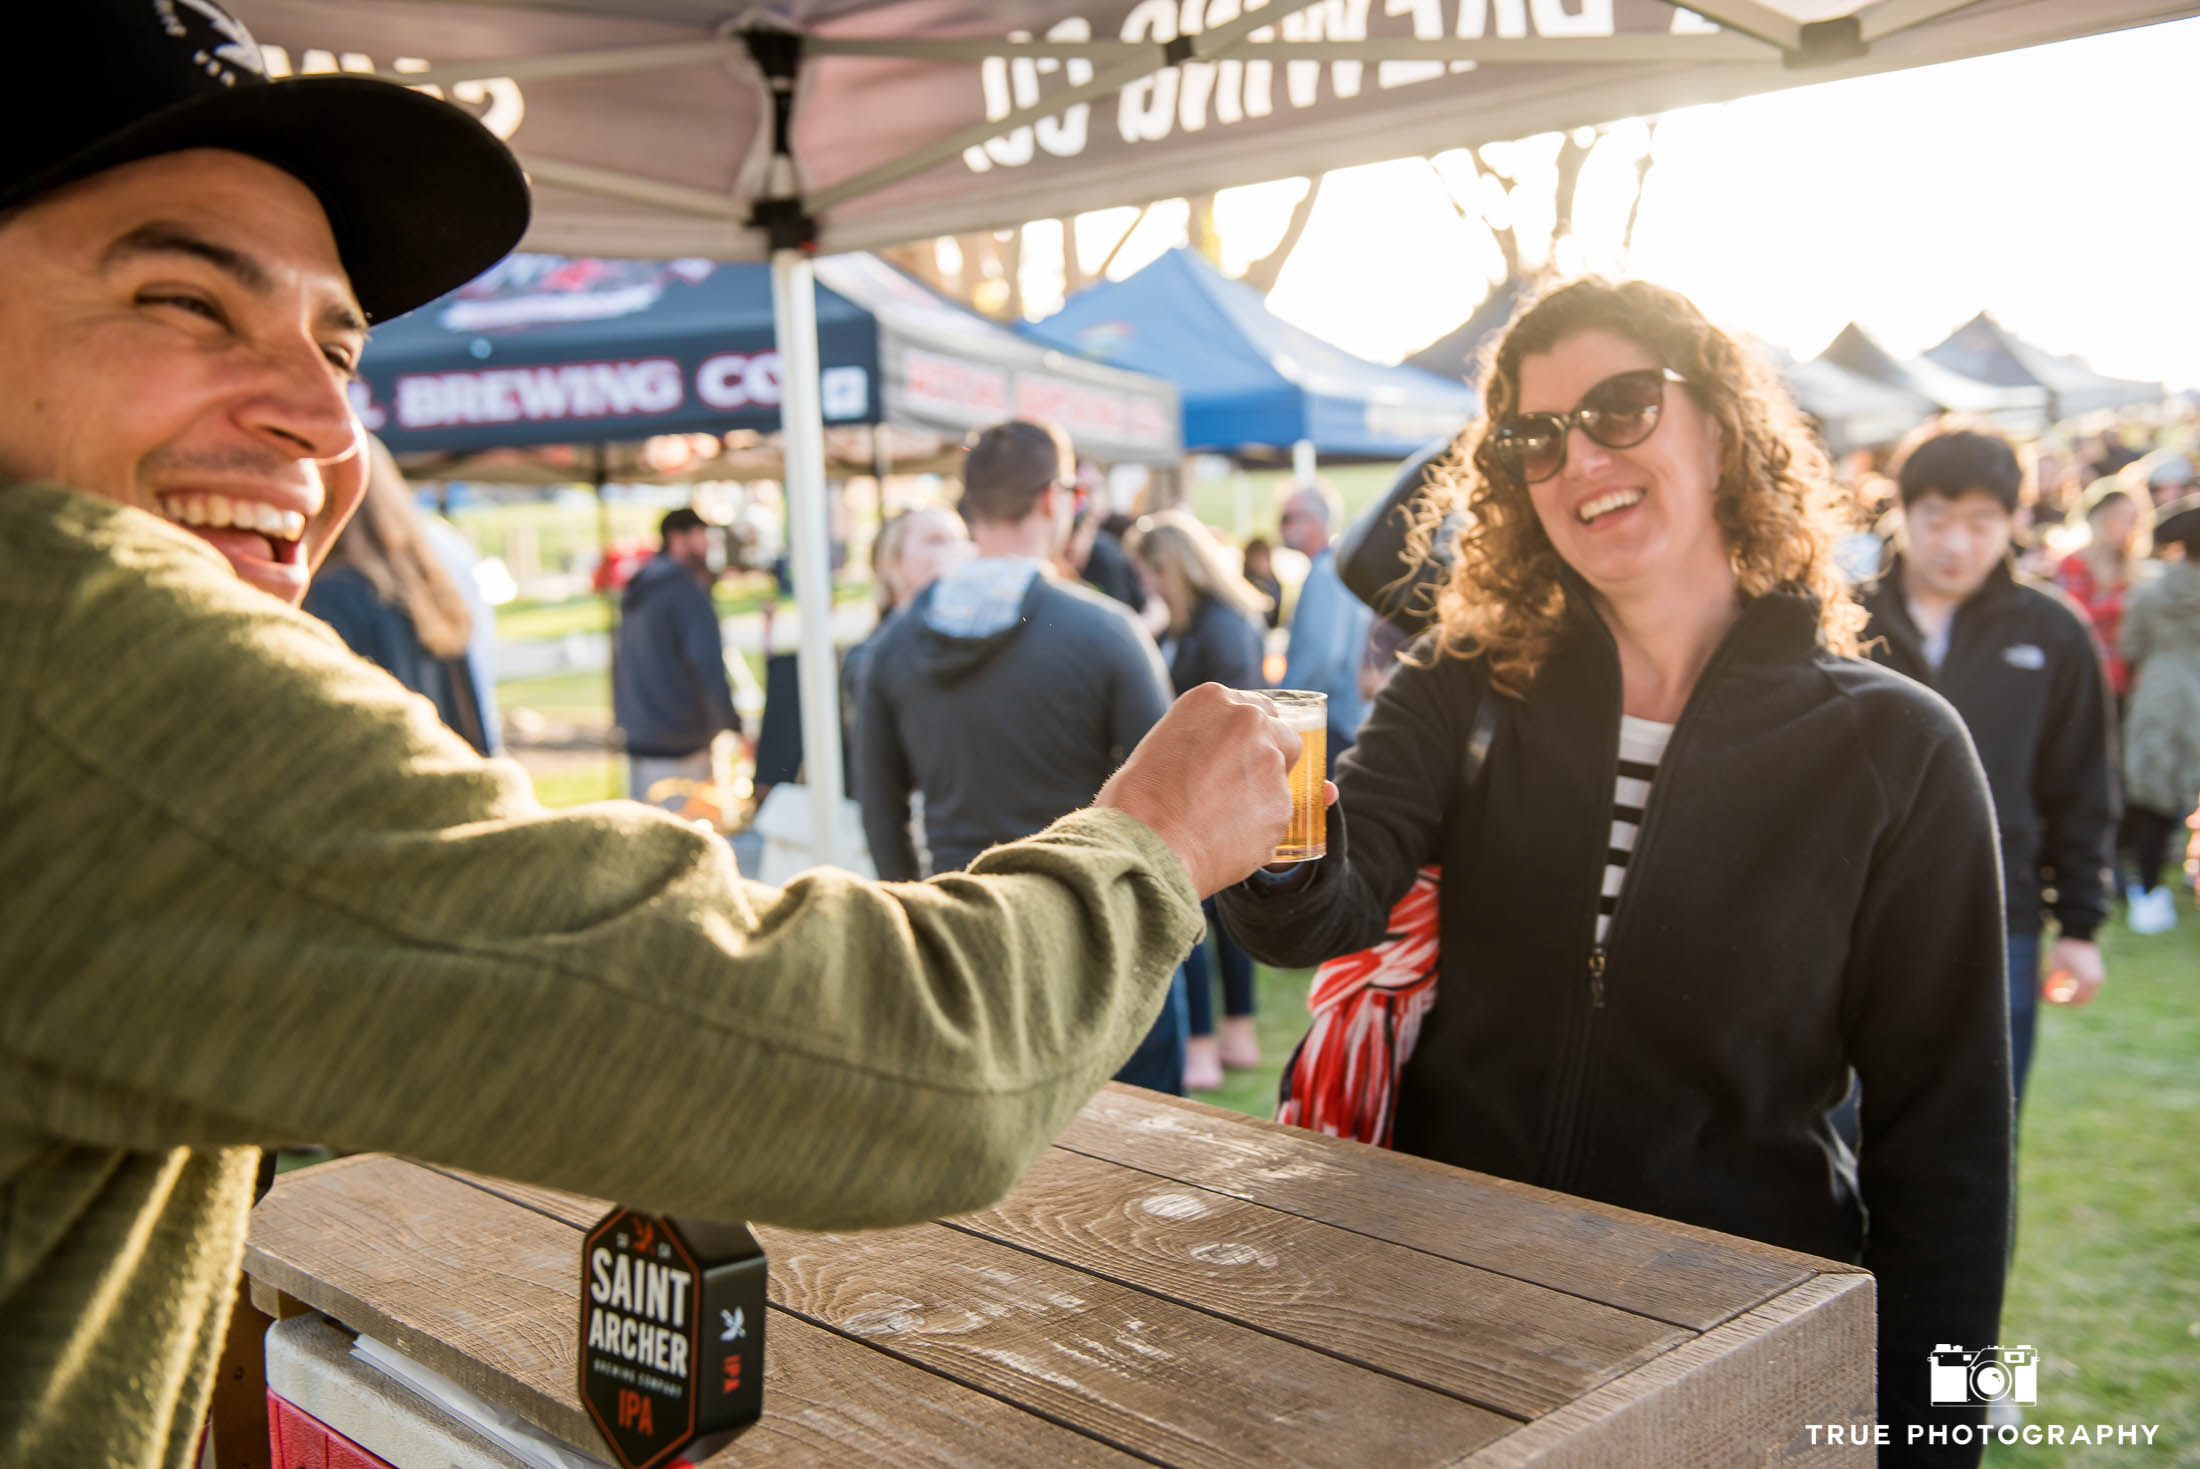 St. Archer Brewing Company brewer interacts with event goers at craft beer booth